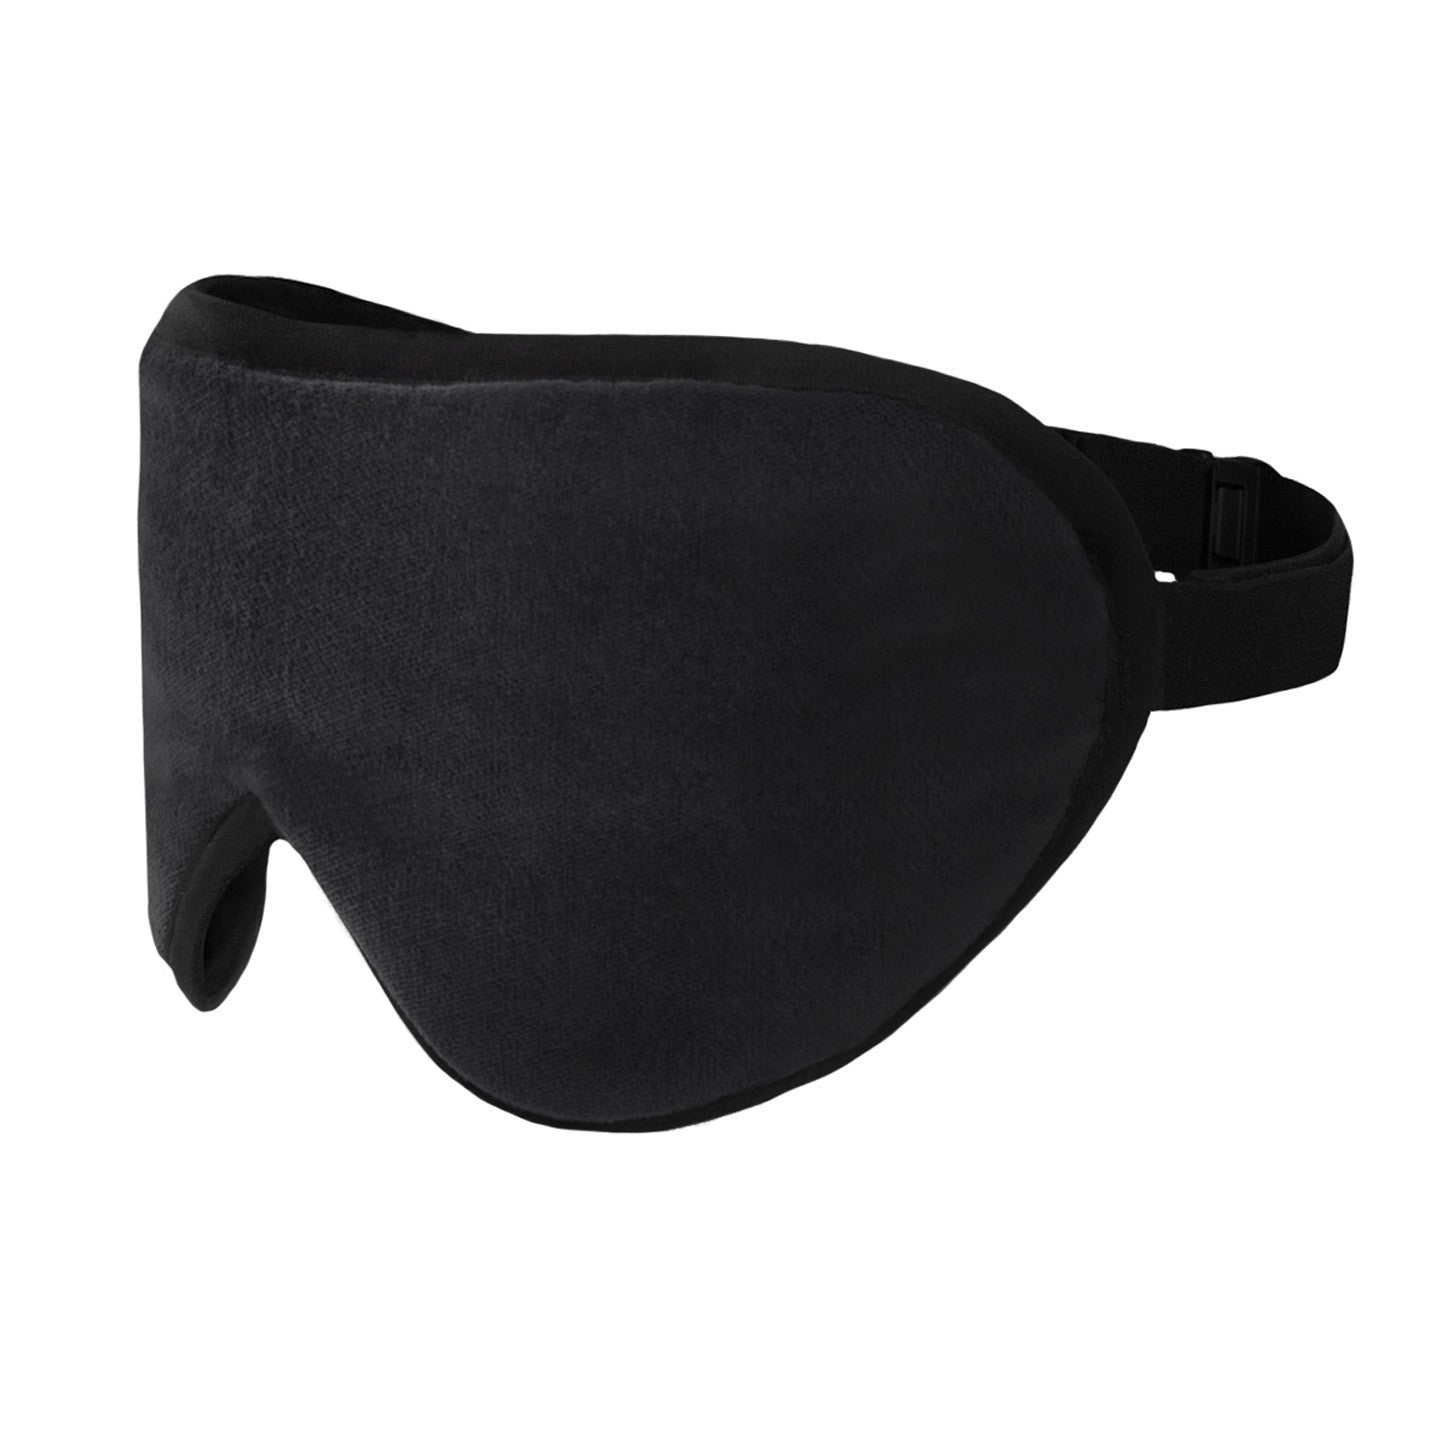 The Sleep Mask Luxe - Stealth Black